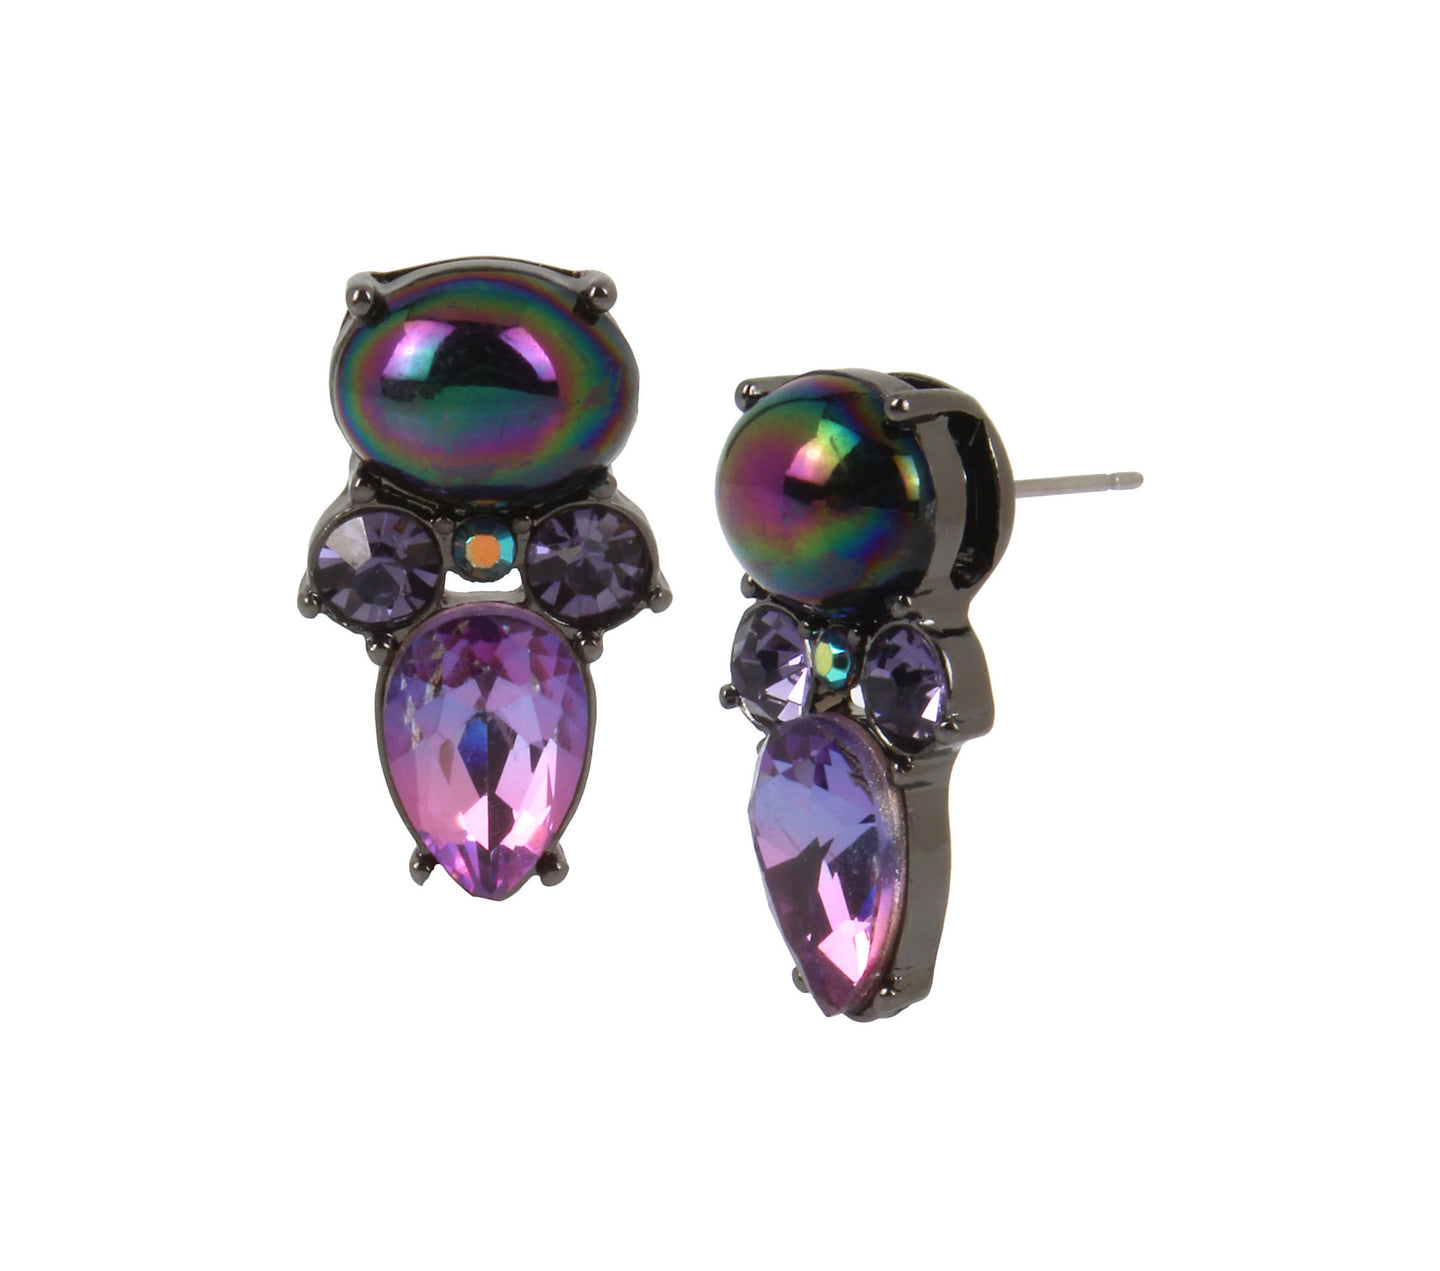 SHAKE IT OFF STUD EARRINGS MULTI - JEWELRY - Betsey Johnson